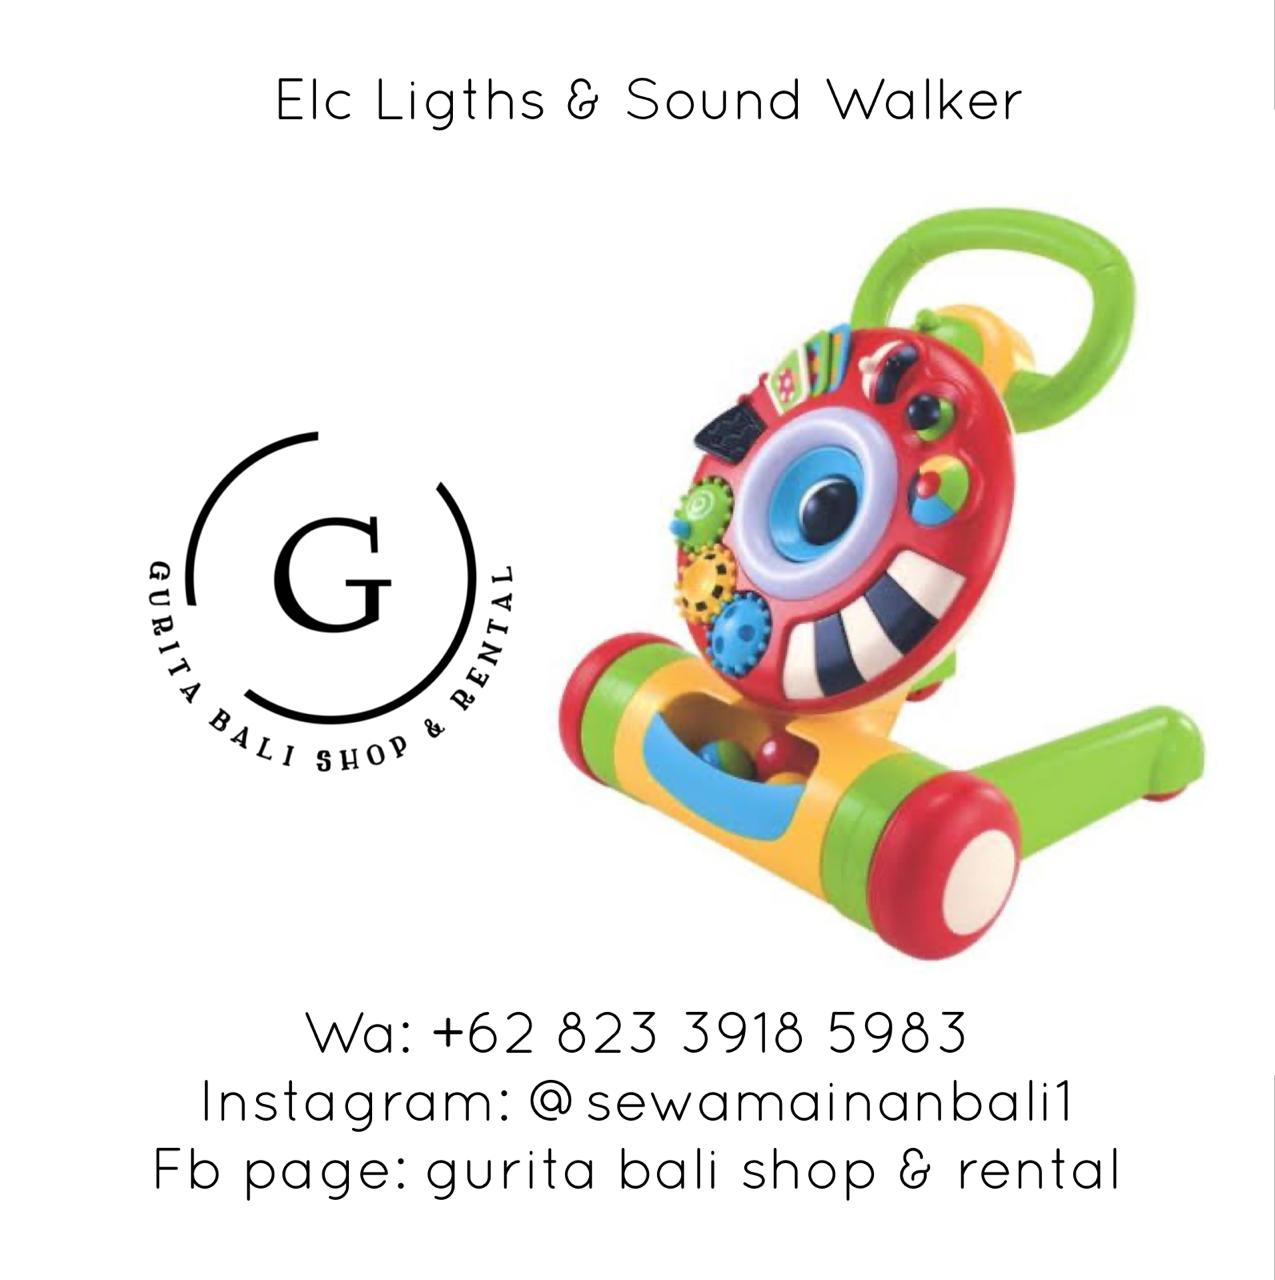 ELC LIGHTS & SOUND WALKER